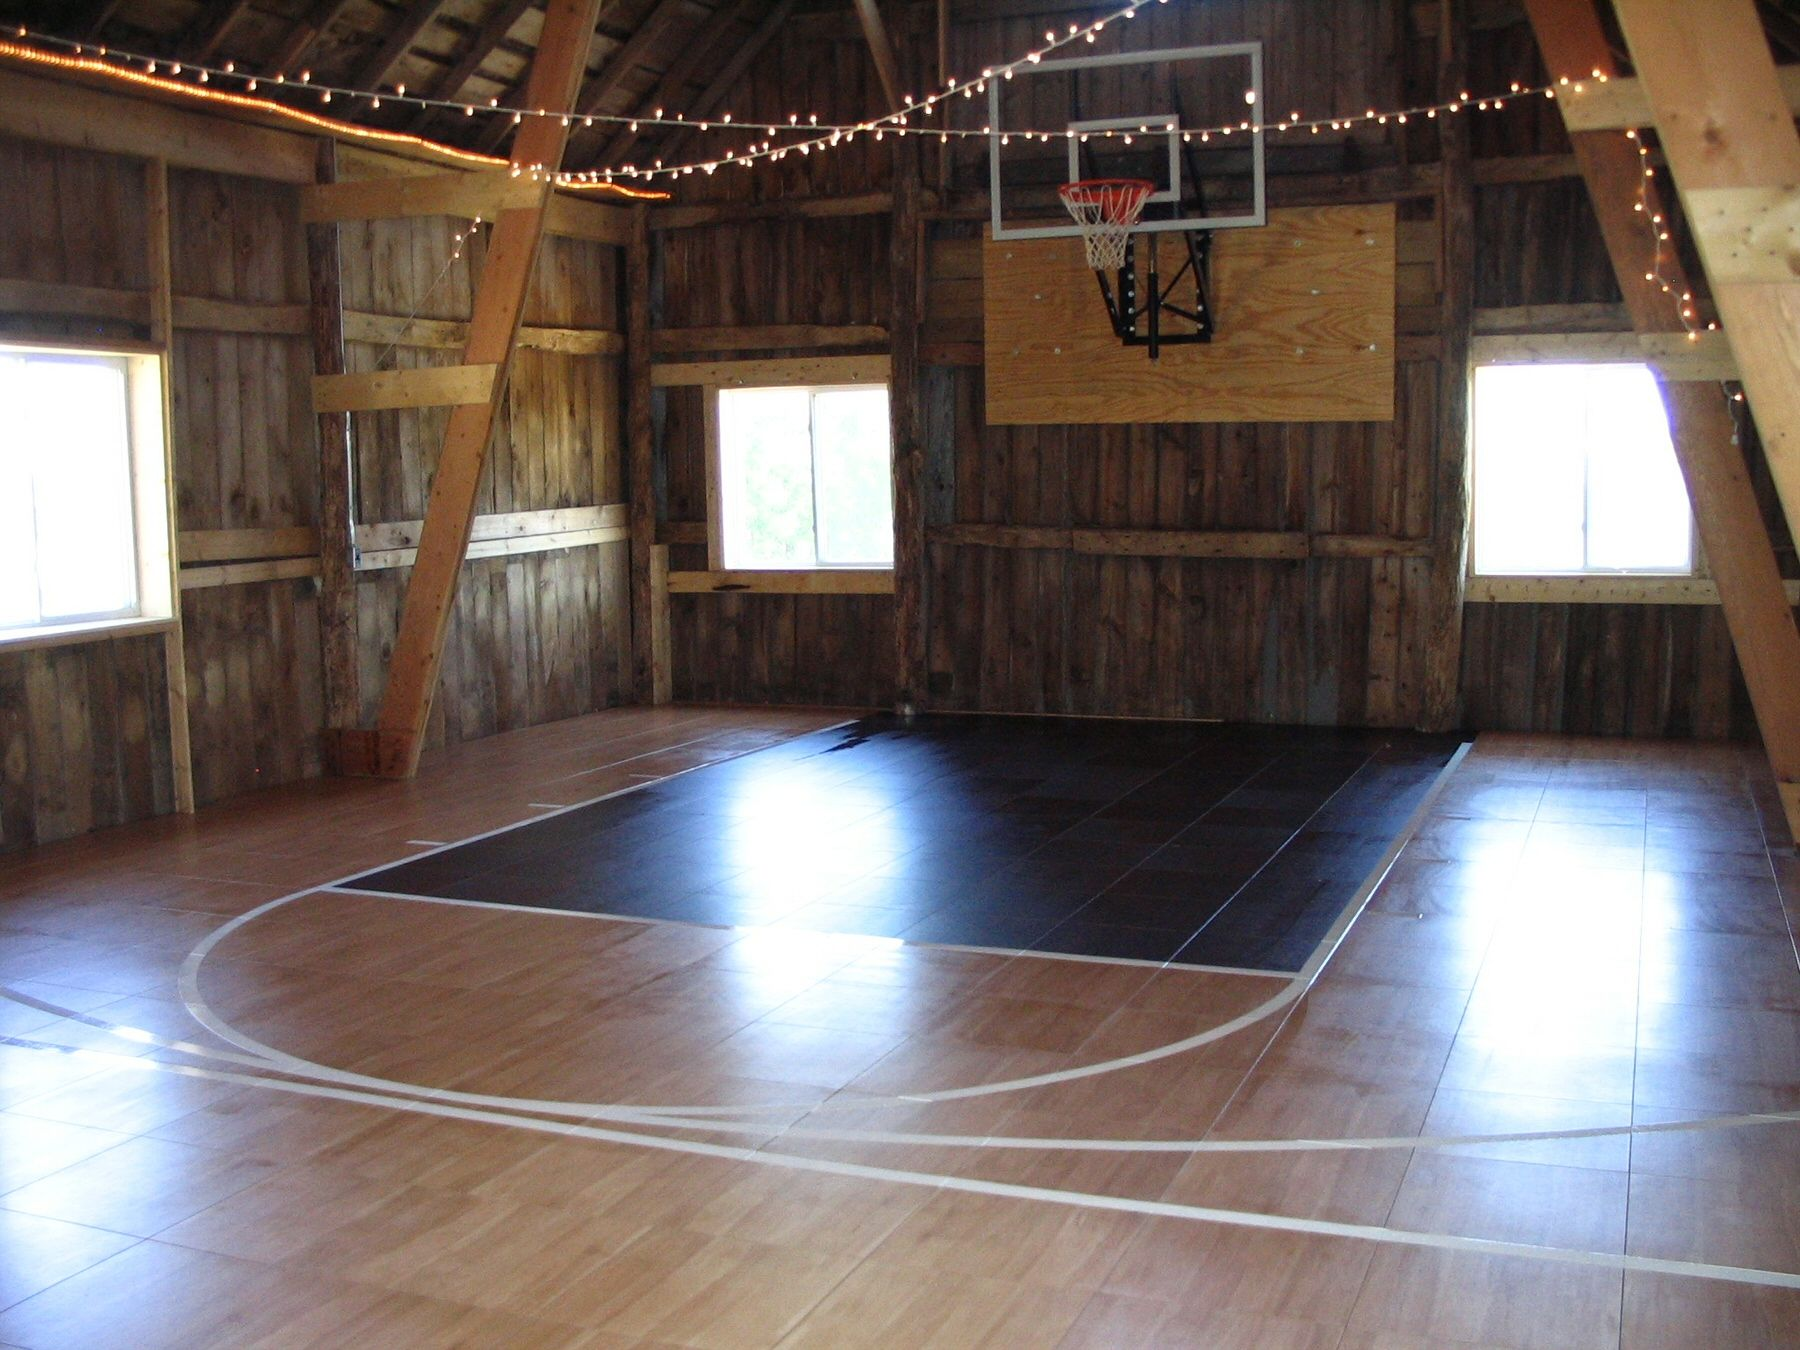 How Much To Build A Basketball Court In Backyard How Much